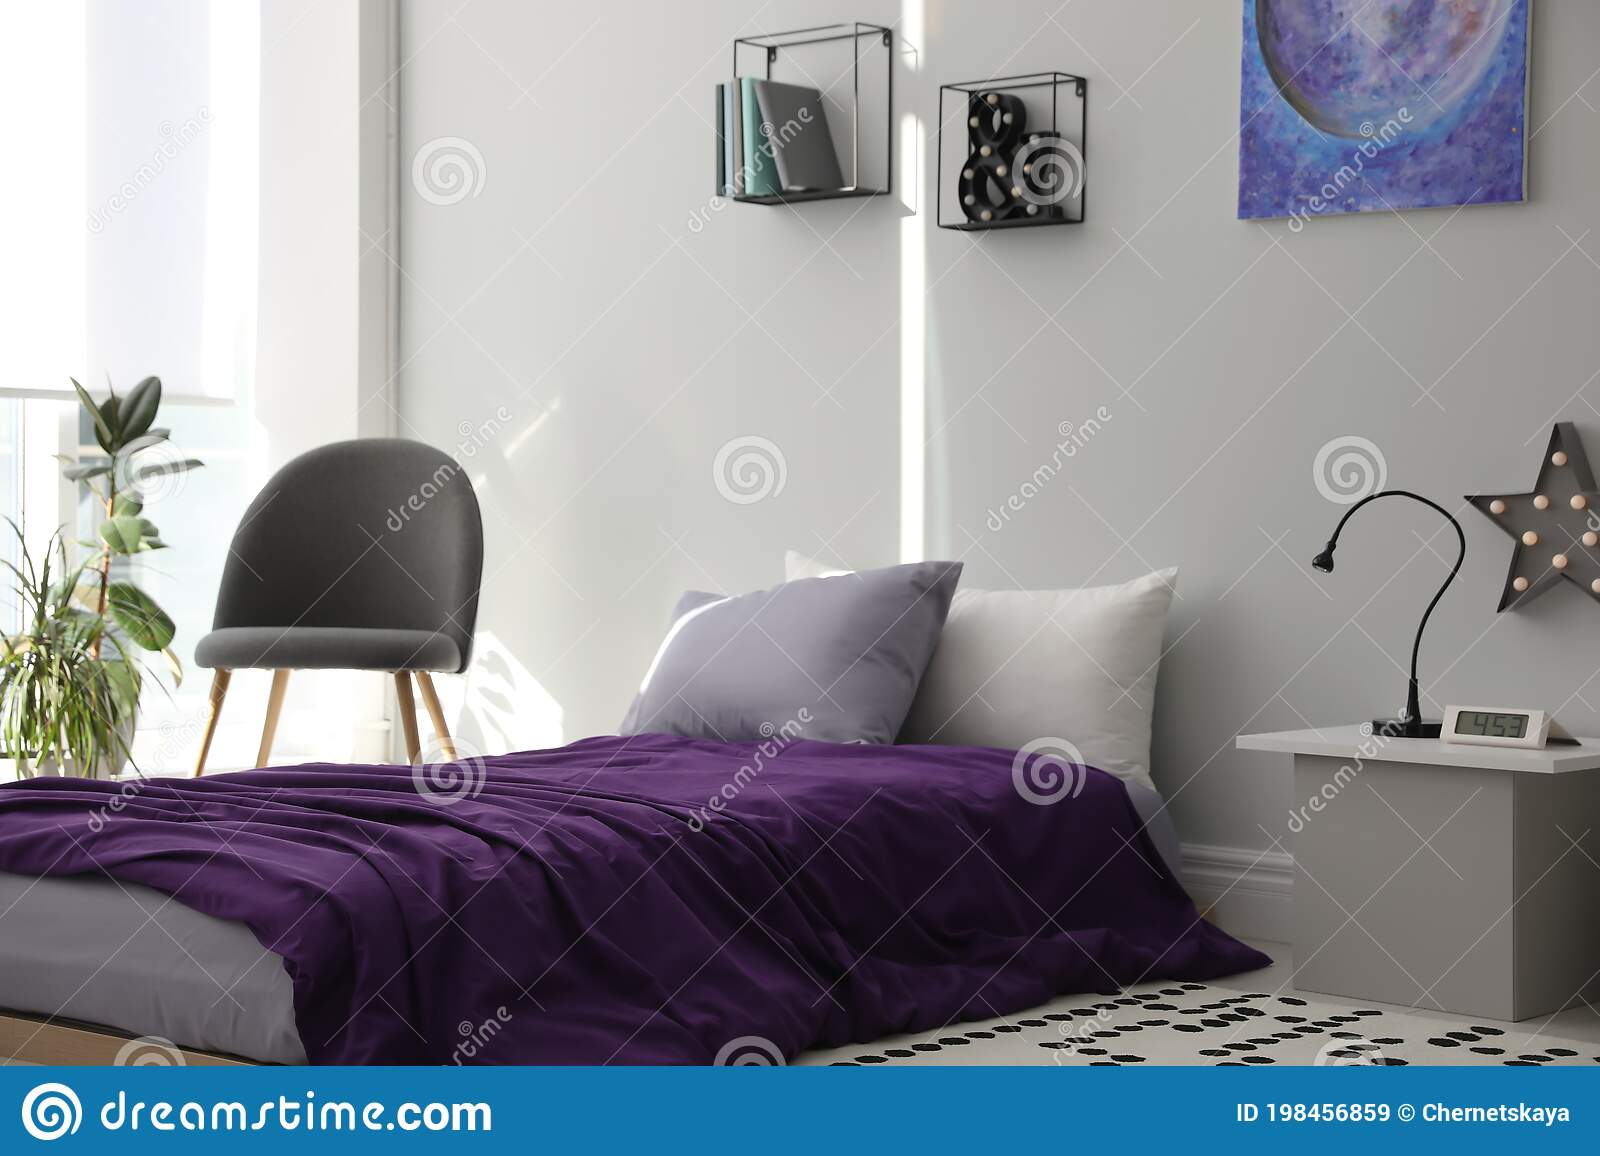 Modern Teenager S Room Interior With Bed And Stylish Design Elements Stock Image Image Of Decoration Background 198456859